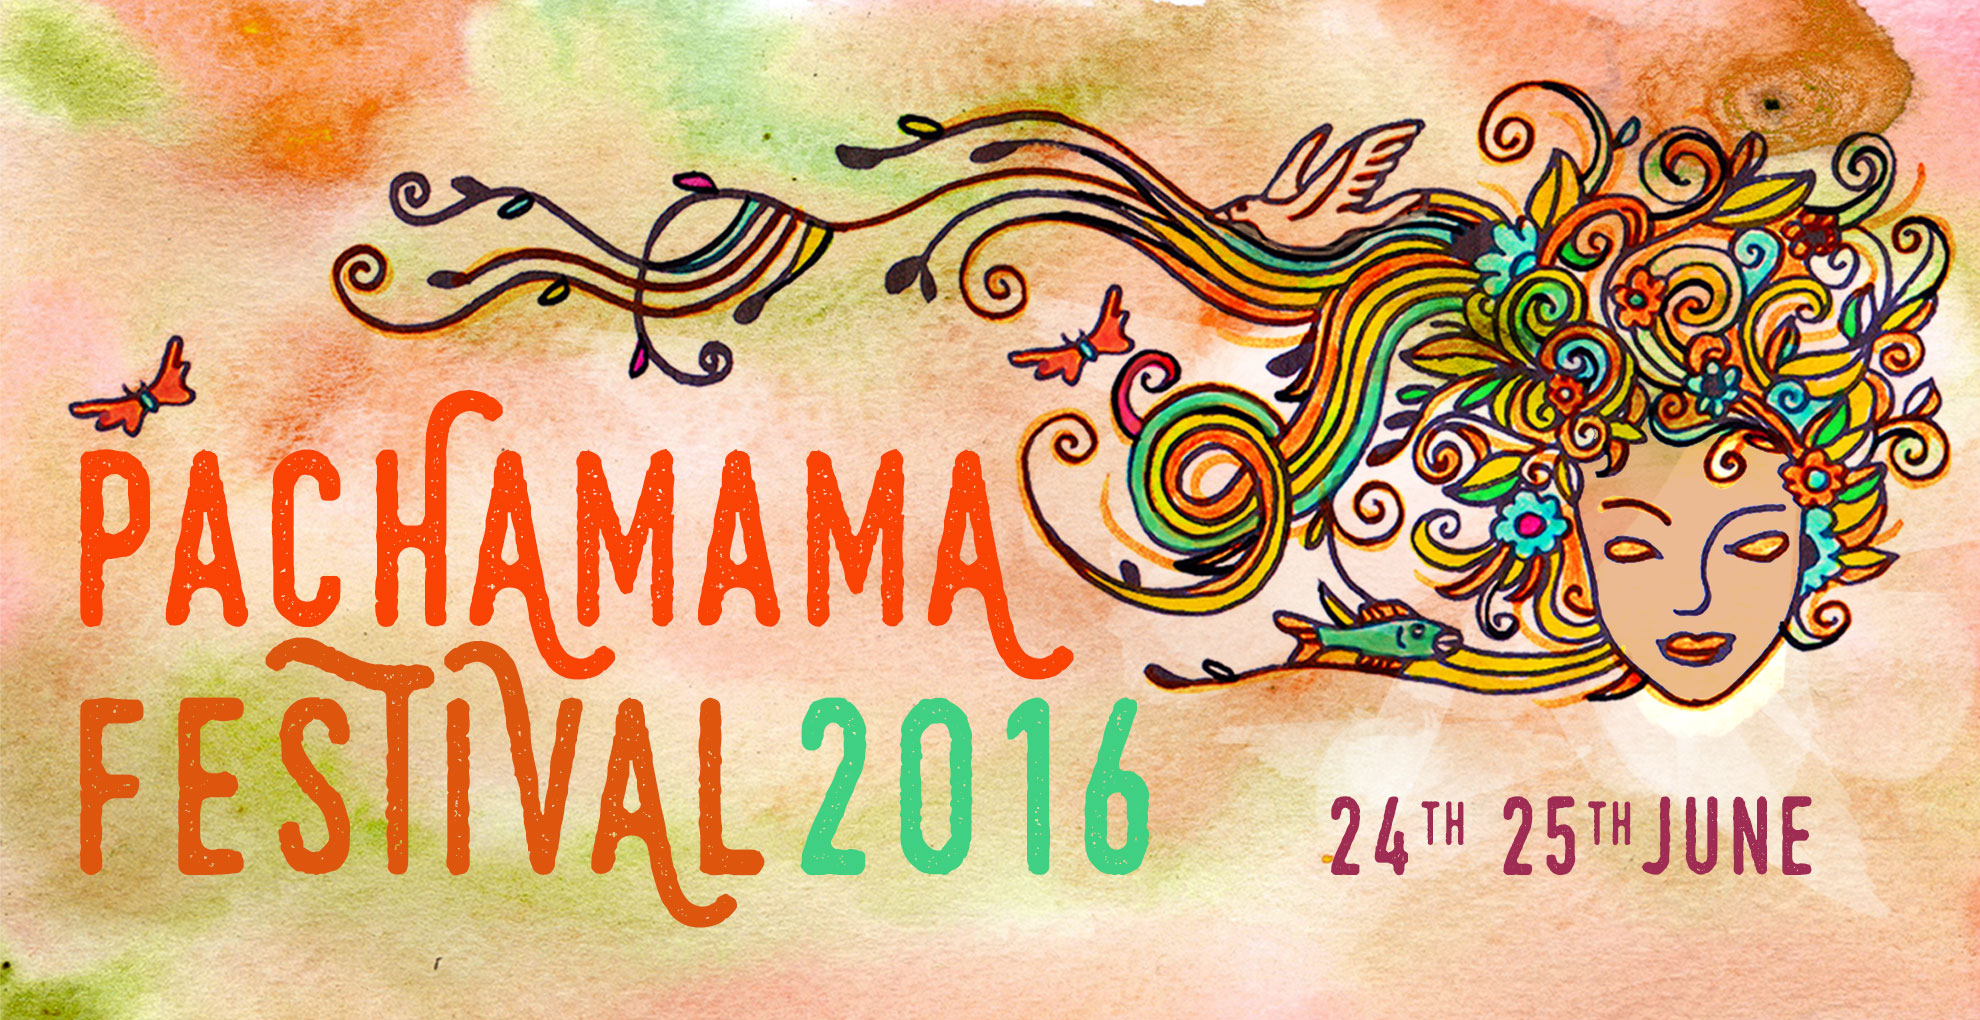 June 2016 Saturday 25th YARN Australia invited to Host a YARNing Circle at the Sydney Latino Festival the festival Partnered by Marrickville Council